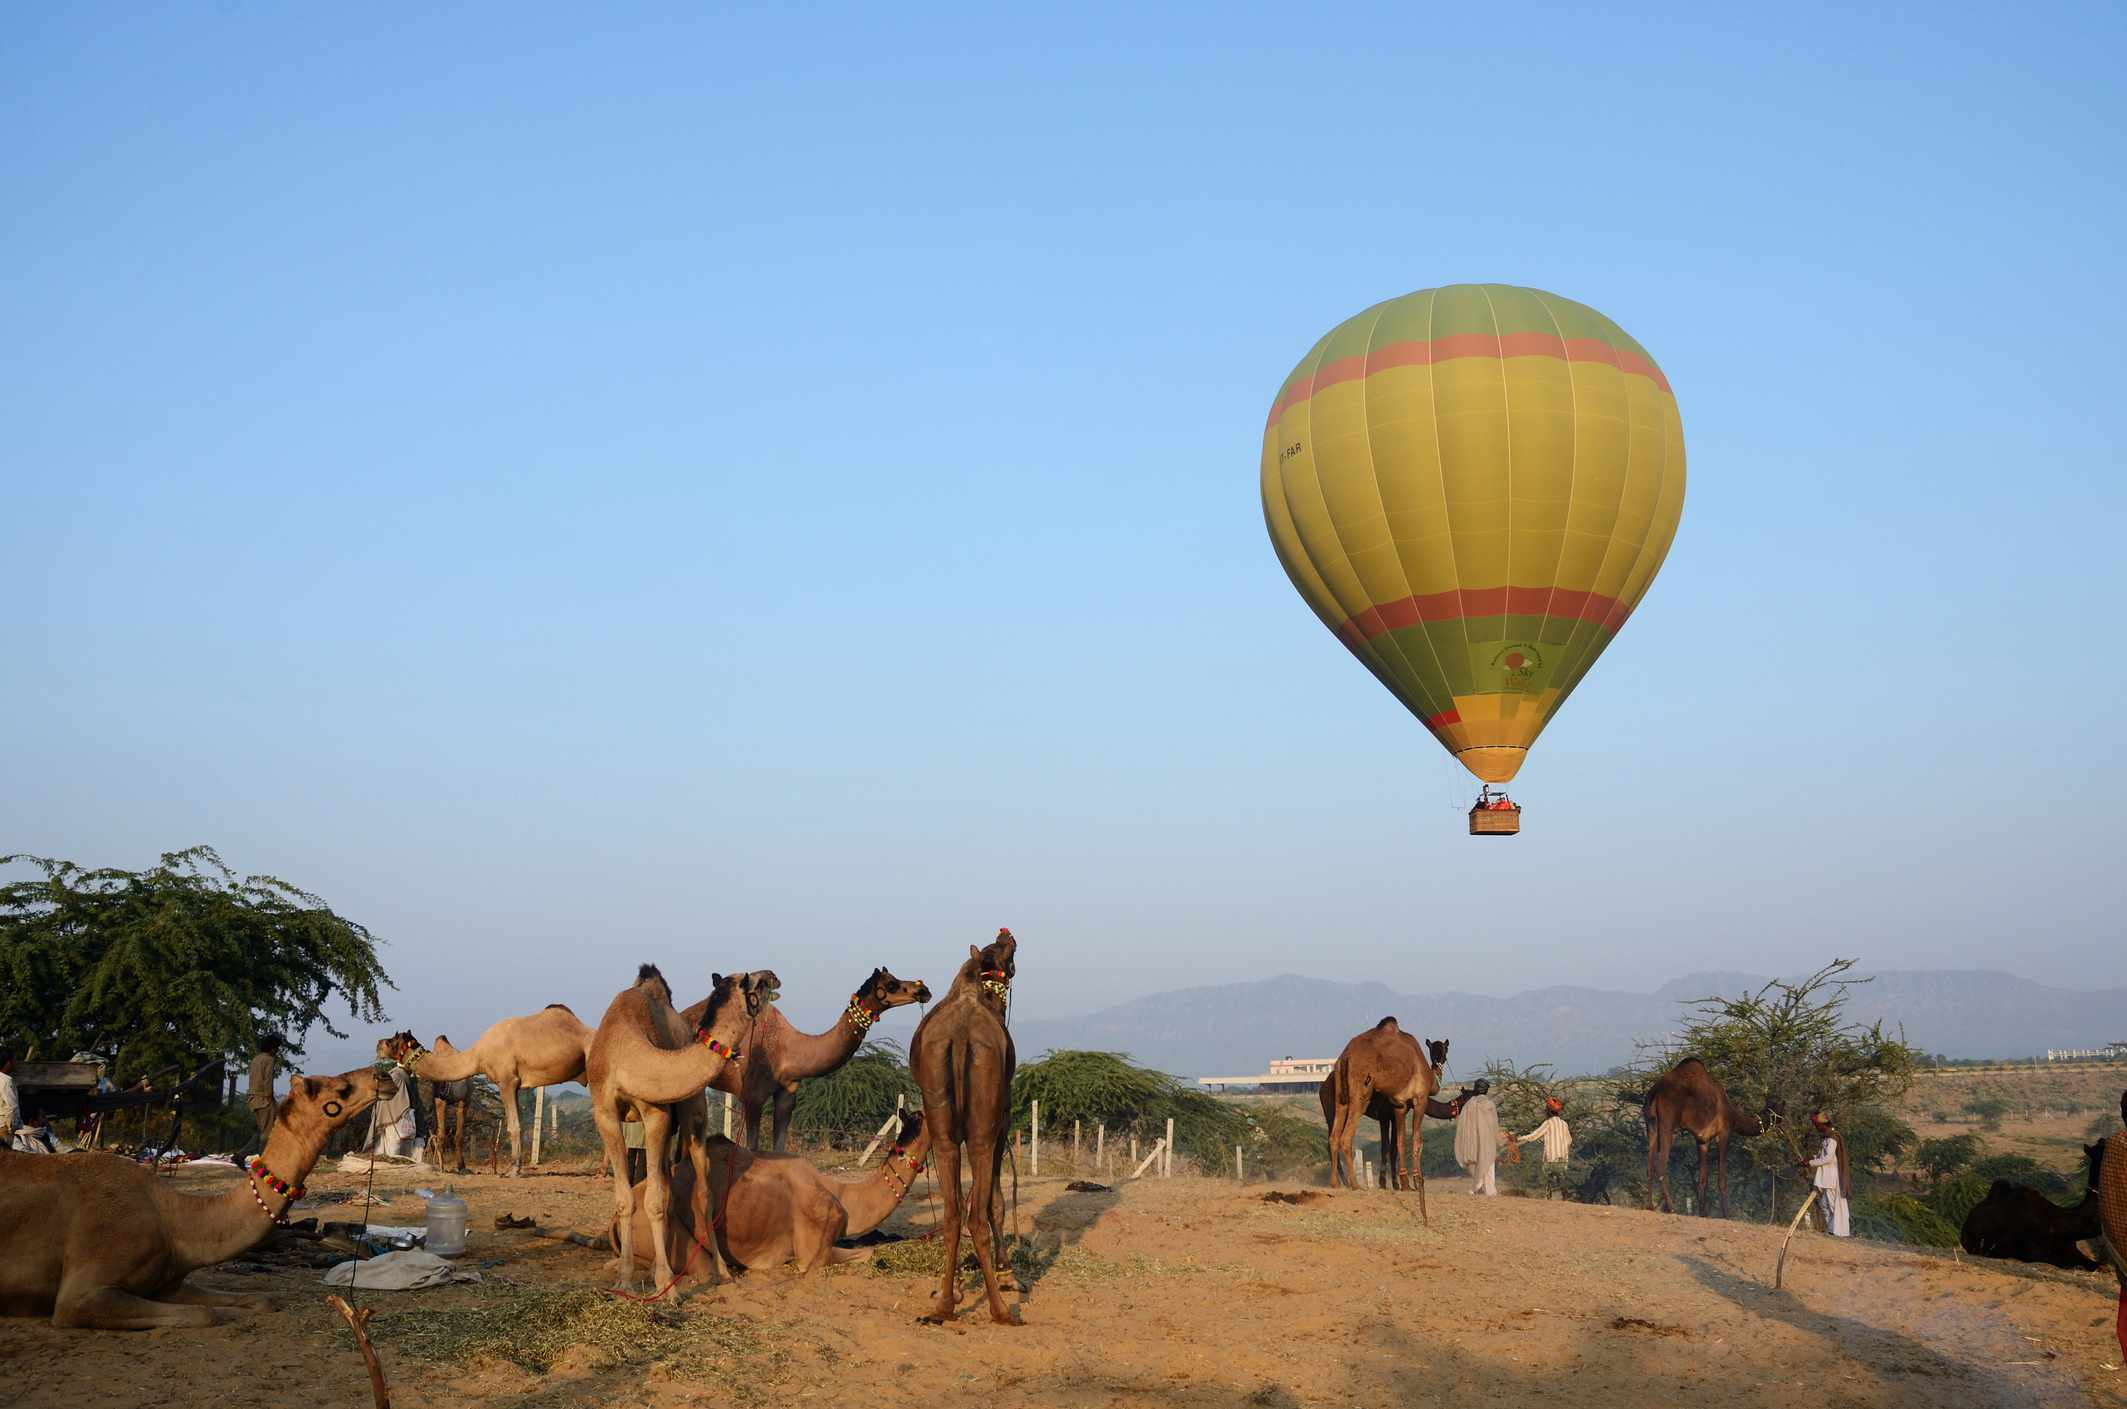 Hot air ballooning in India above camels.